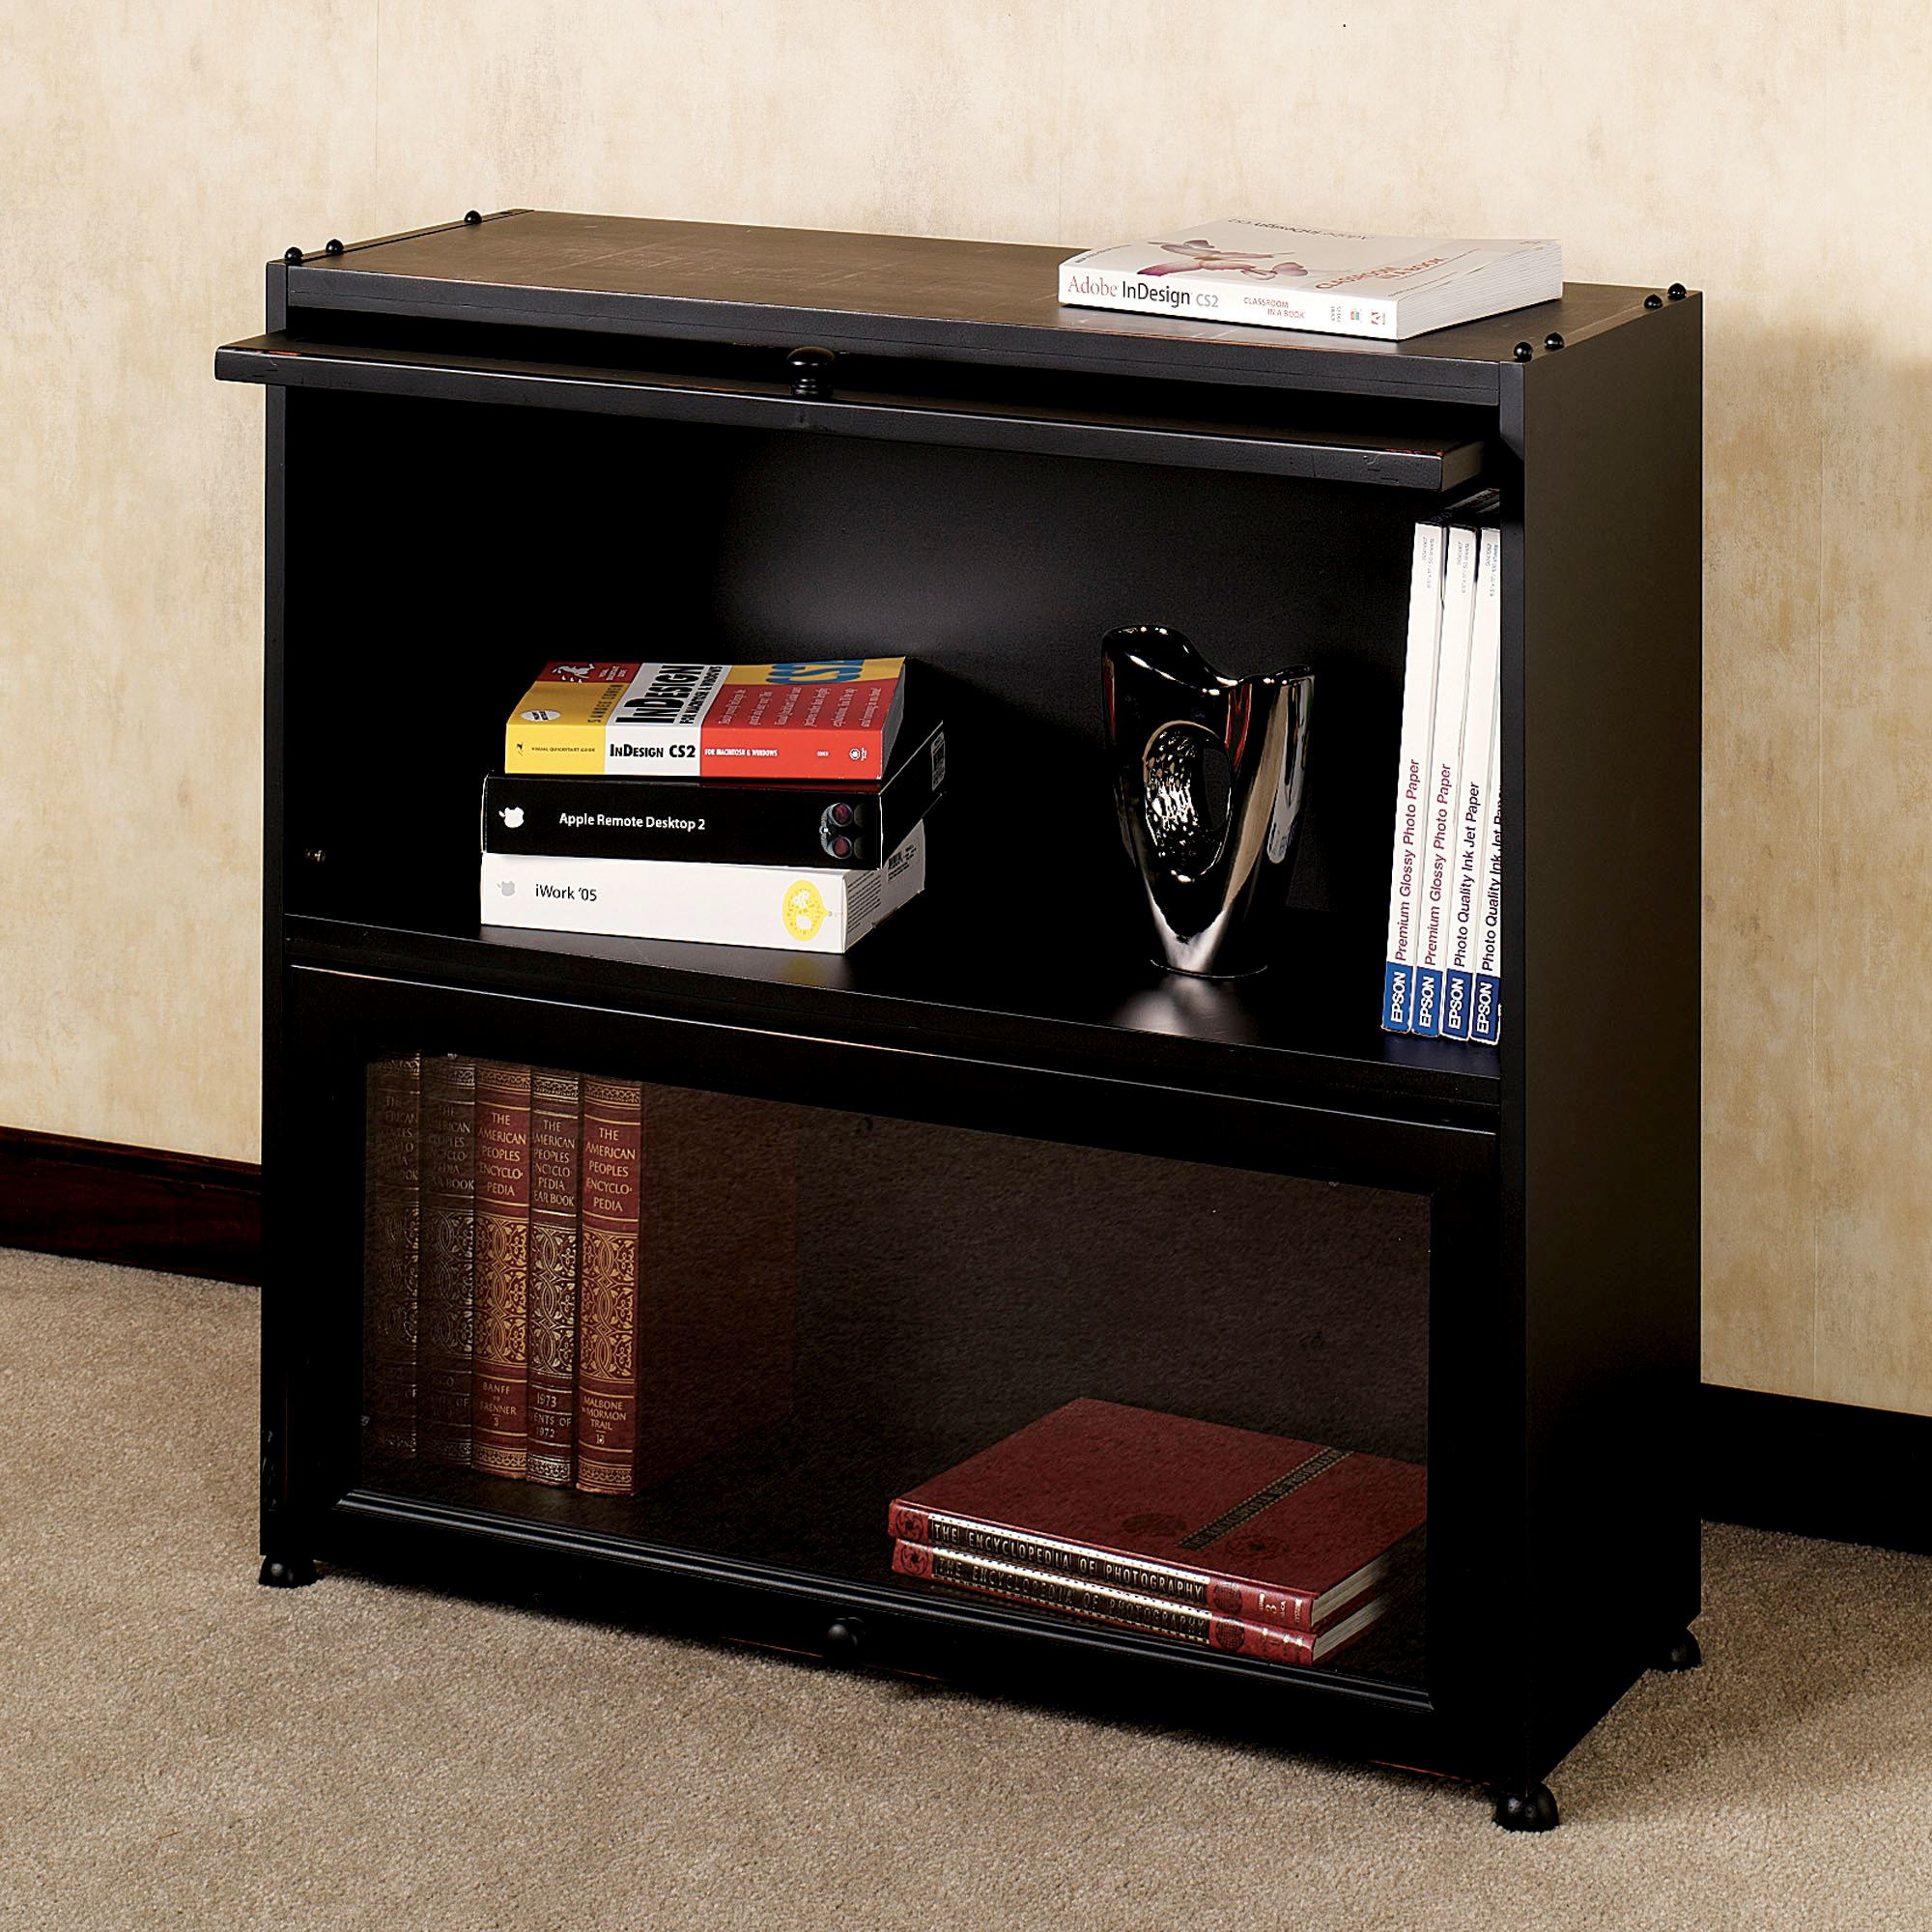 auston barrister bookcase with glass doors - Barrister Bookshelves